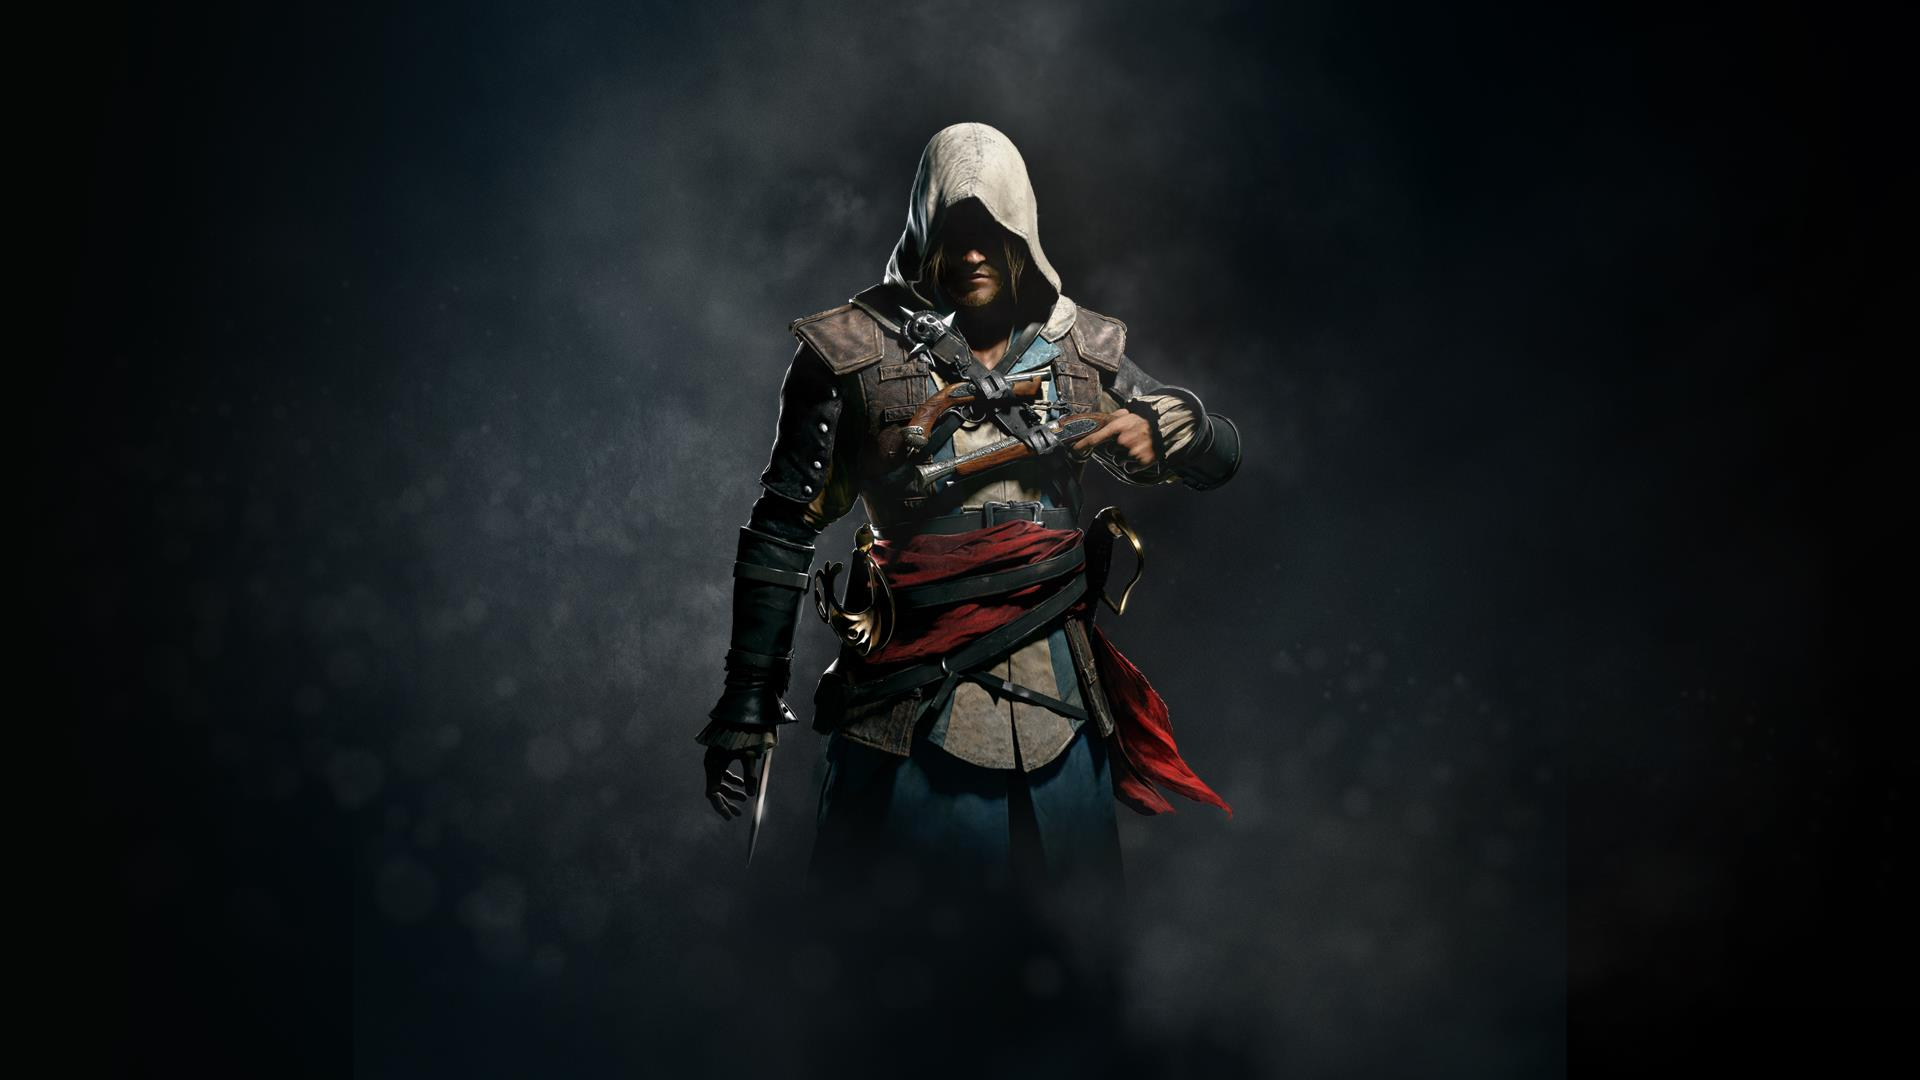 Death Of A Salesman in Assassin's Creed IV: Black Flag (Xbox One)